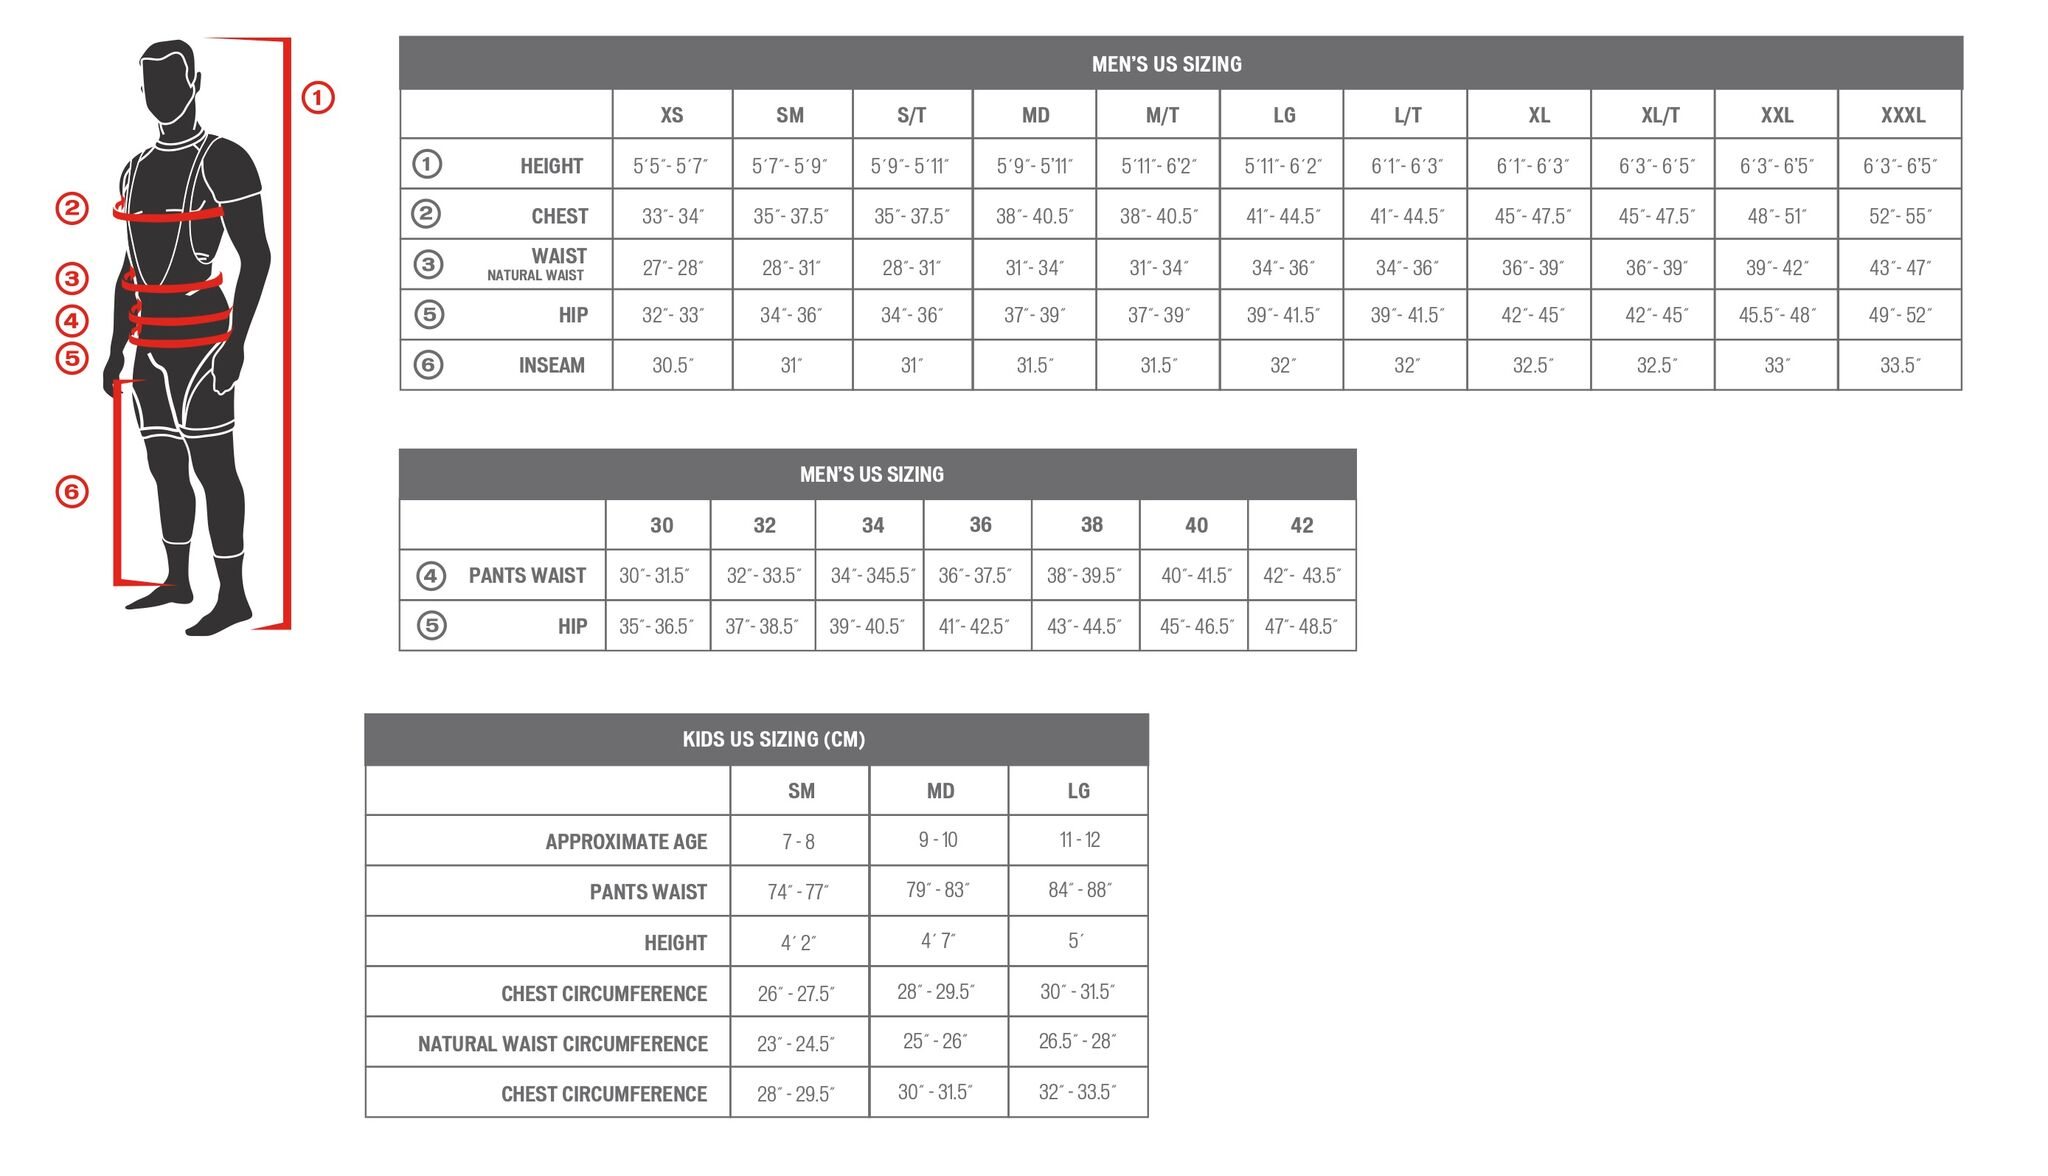 Specialized Men's Apparel sizing chart